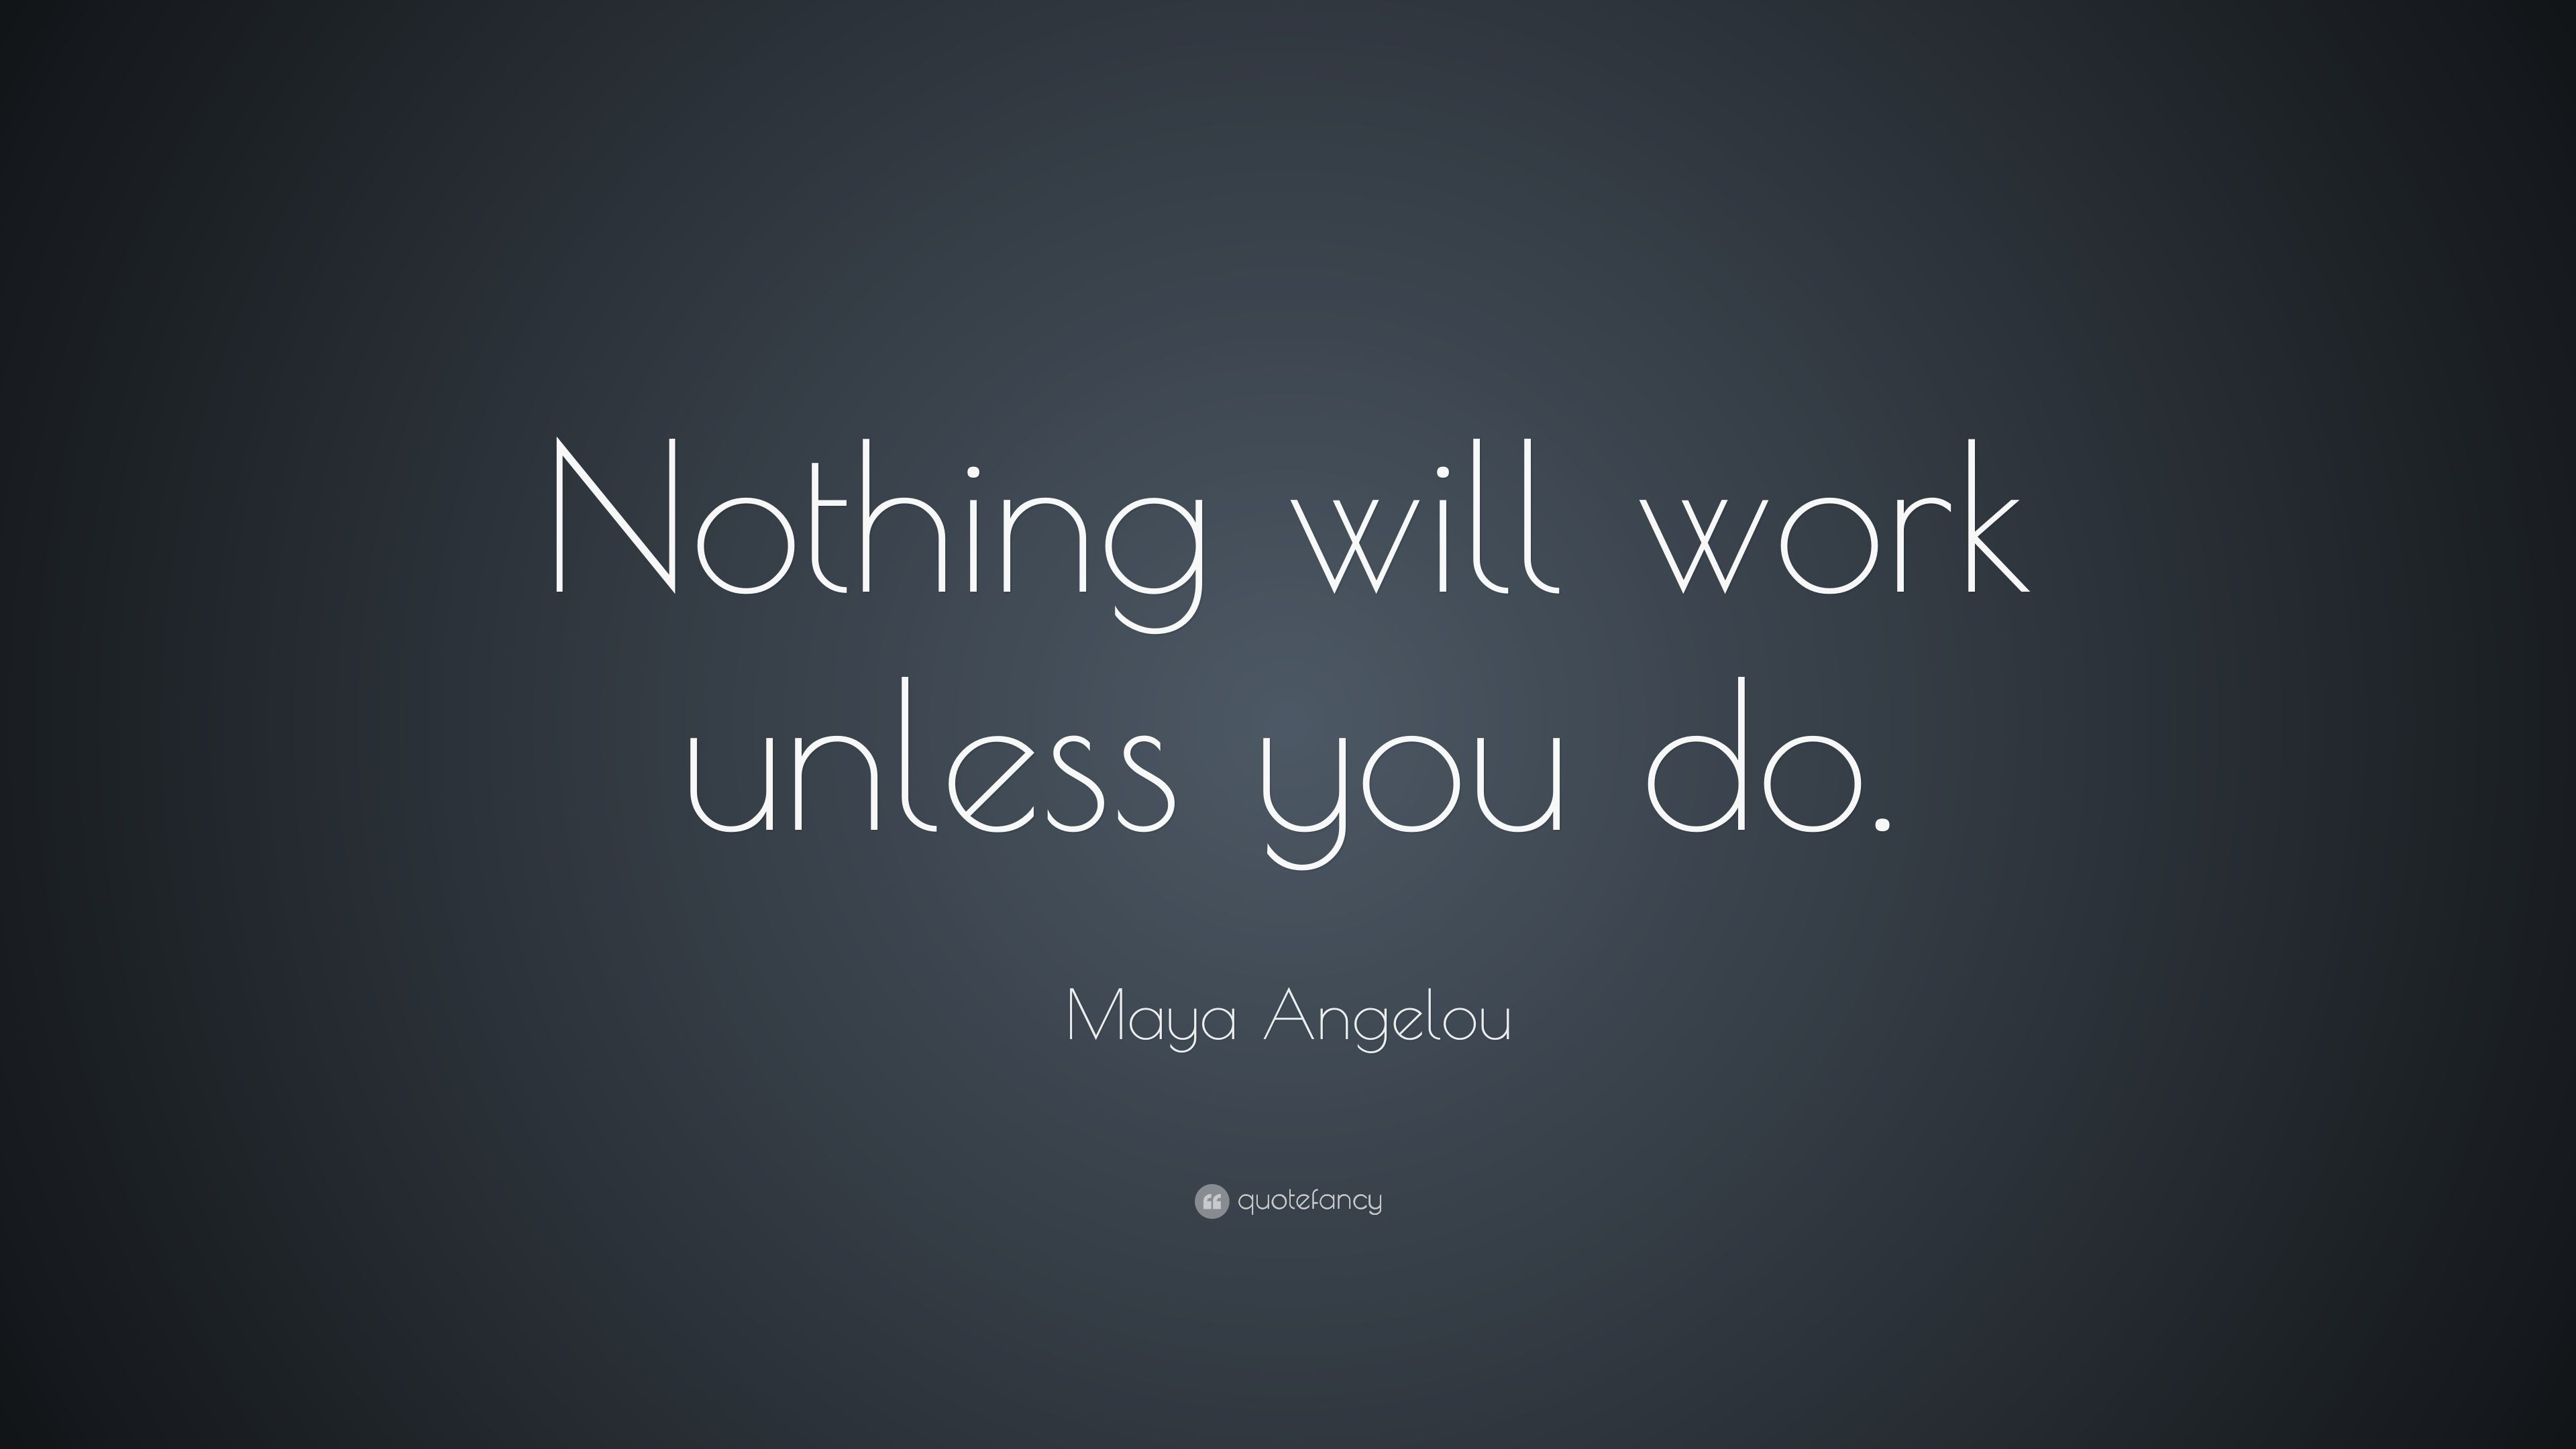 Maya Angelou Quotes Classy Maya Angelou Quotes 25 Wallpapers  Quotefancy  Life  Pinterest